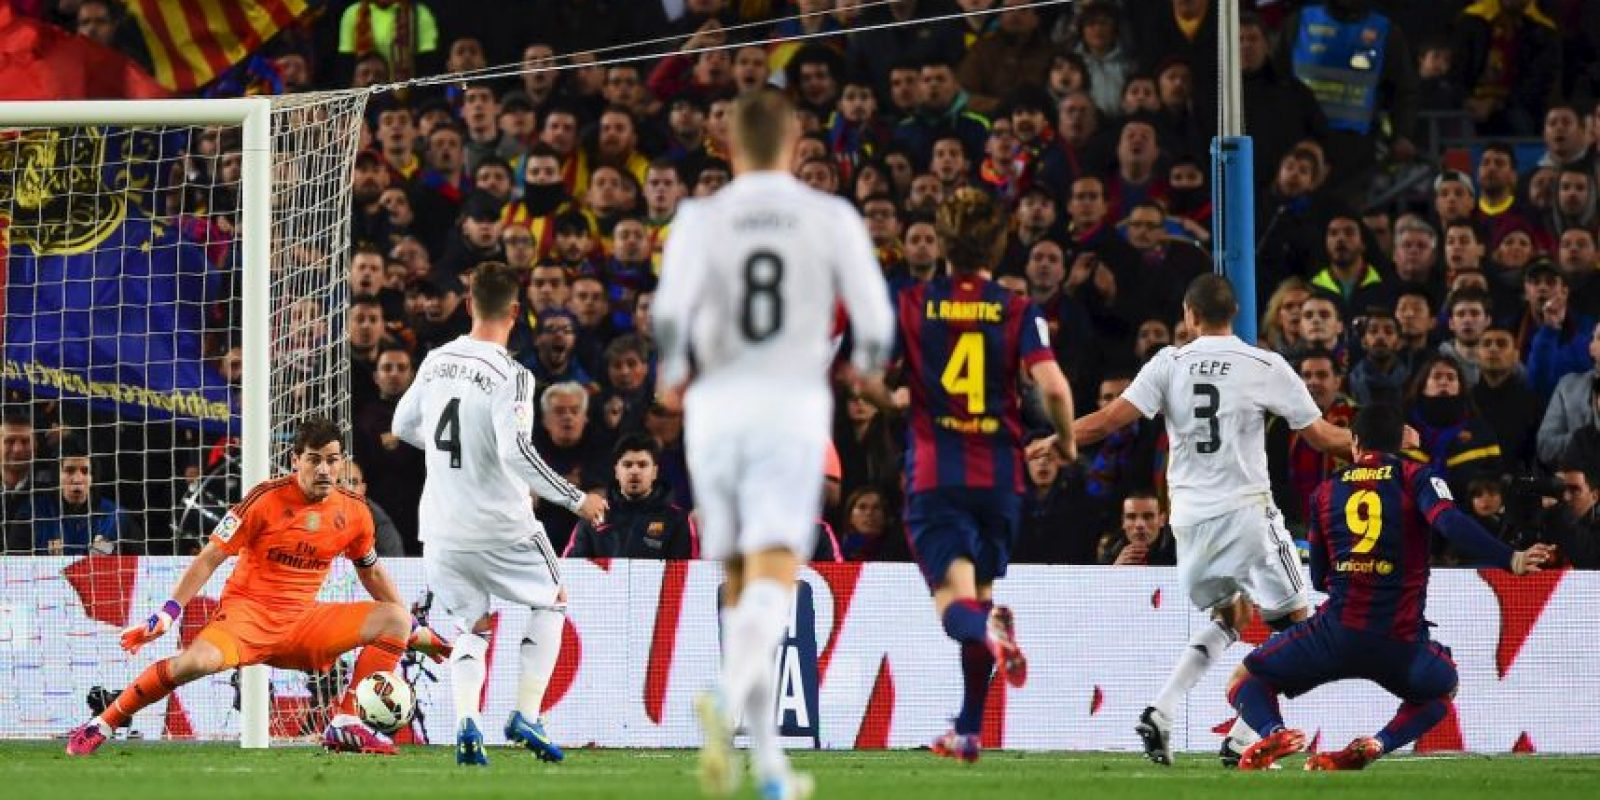 Real Madrid y Barcelona se juegan el honor y orgullo Foto: Getty Images